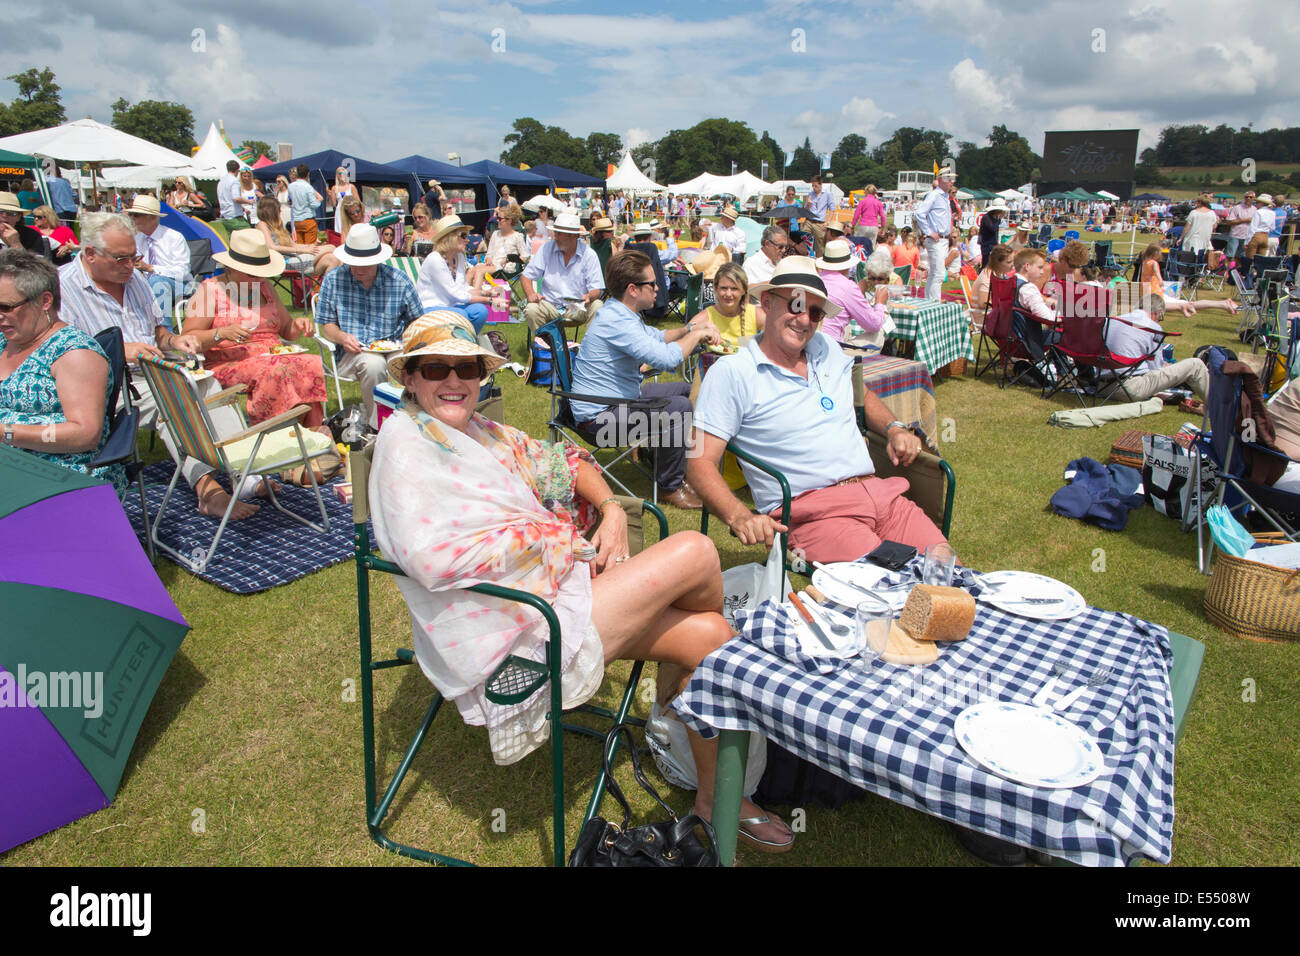 Spectators enjoy picnics at Veuve Clicquot Gold Cup, British Open Polo Championship, Cowdray Park Polo Club, Midhurst - Stock Image